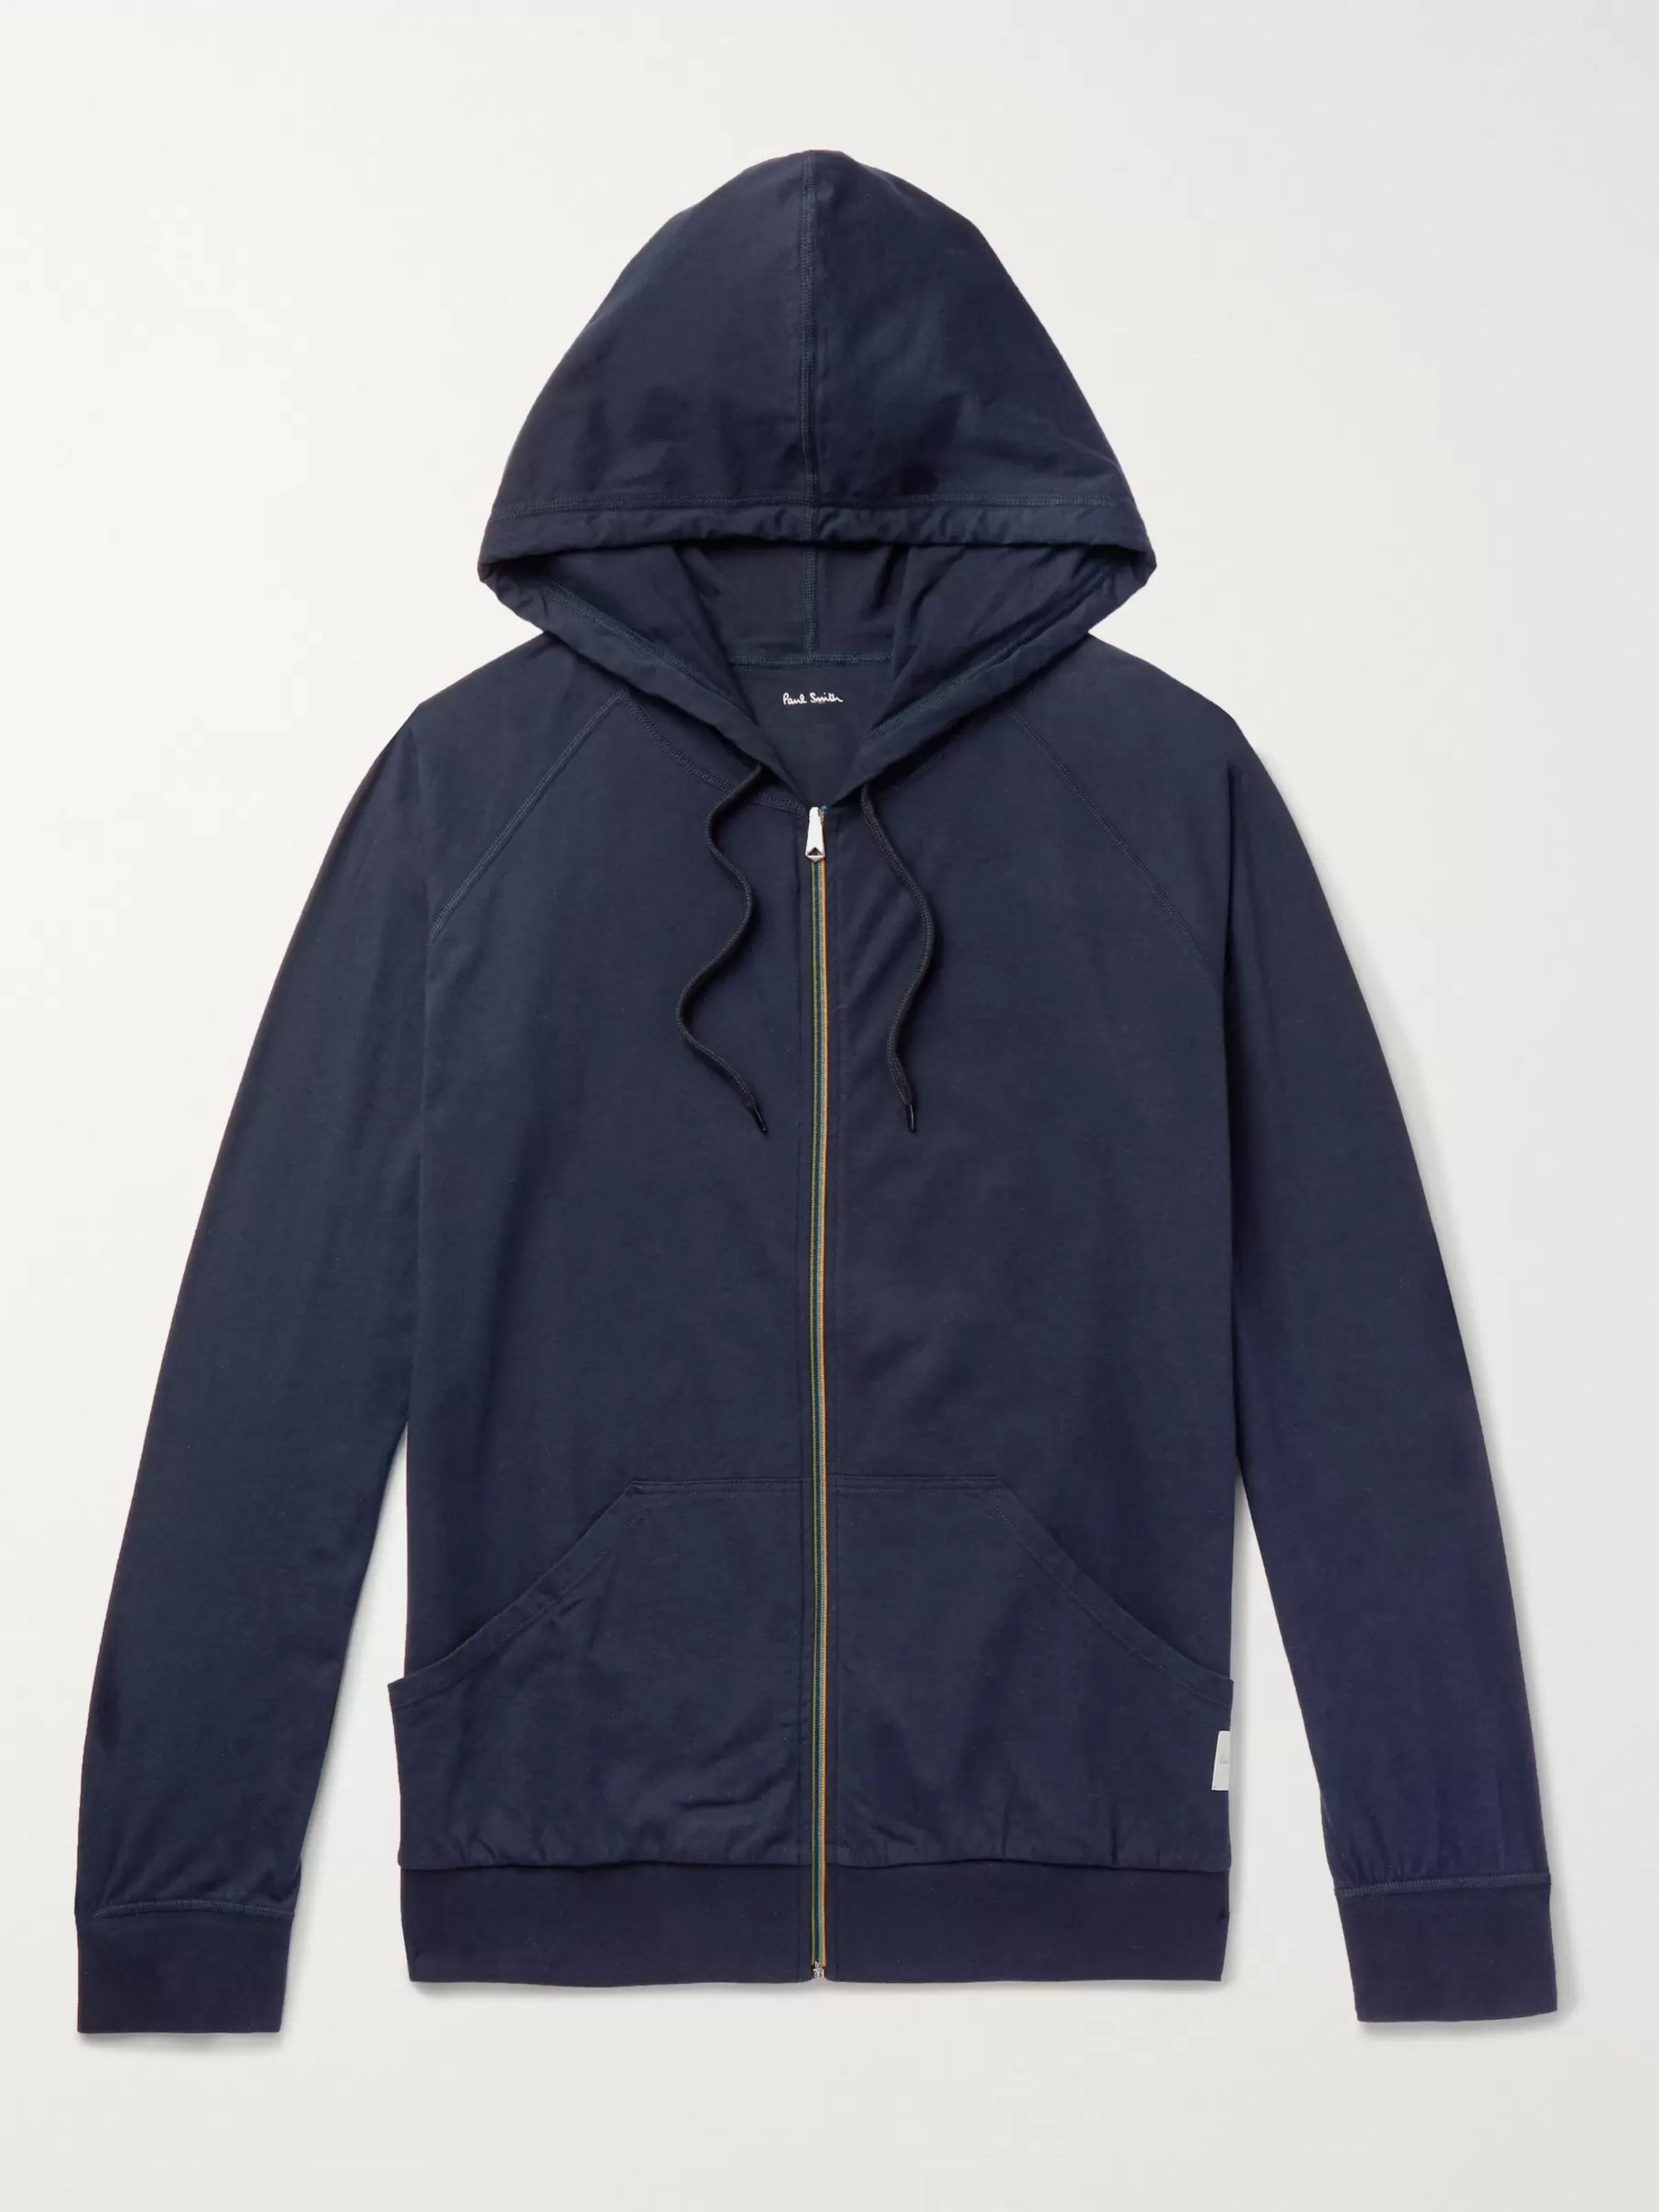 Black Zip Throug Hoody  Paul Smith  Tröjor